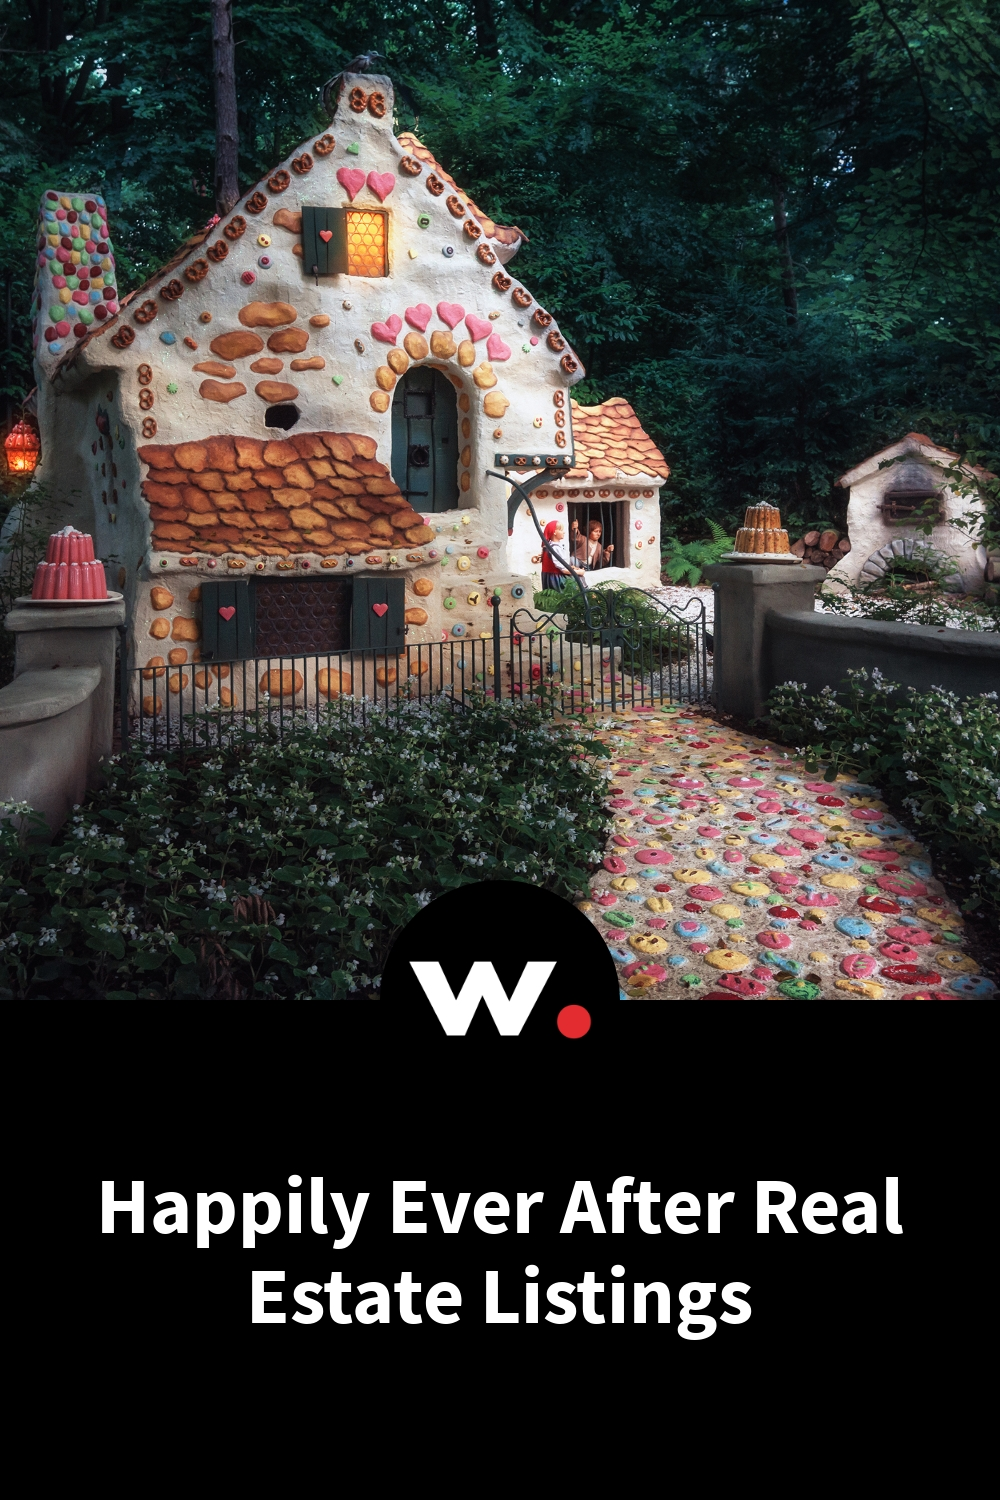 Happily Ever After Real Estate Listings